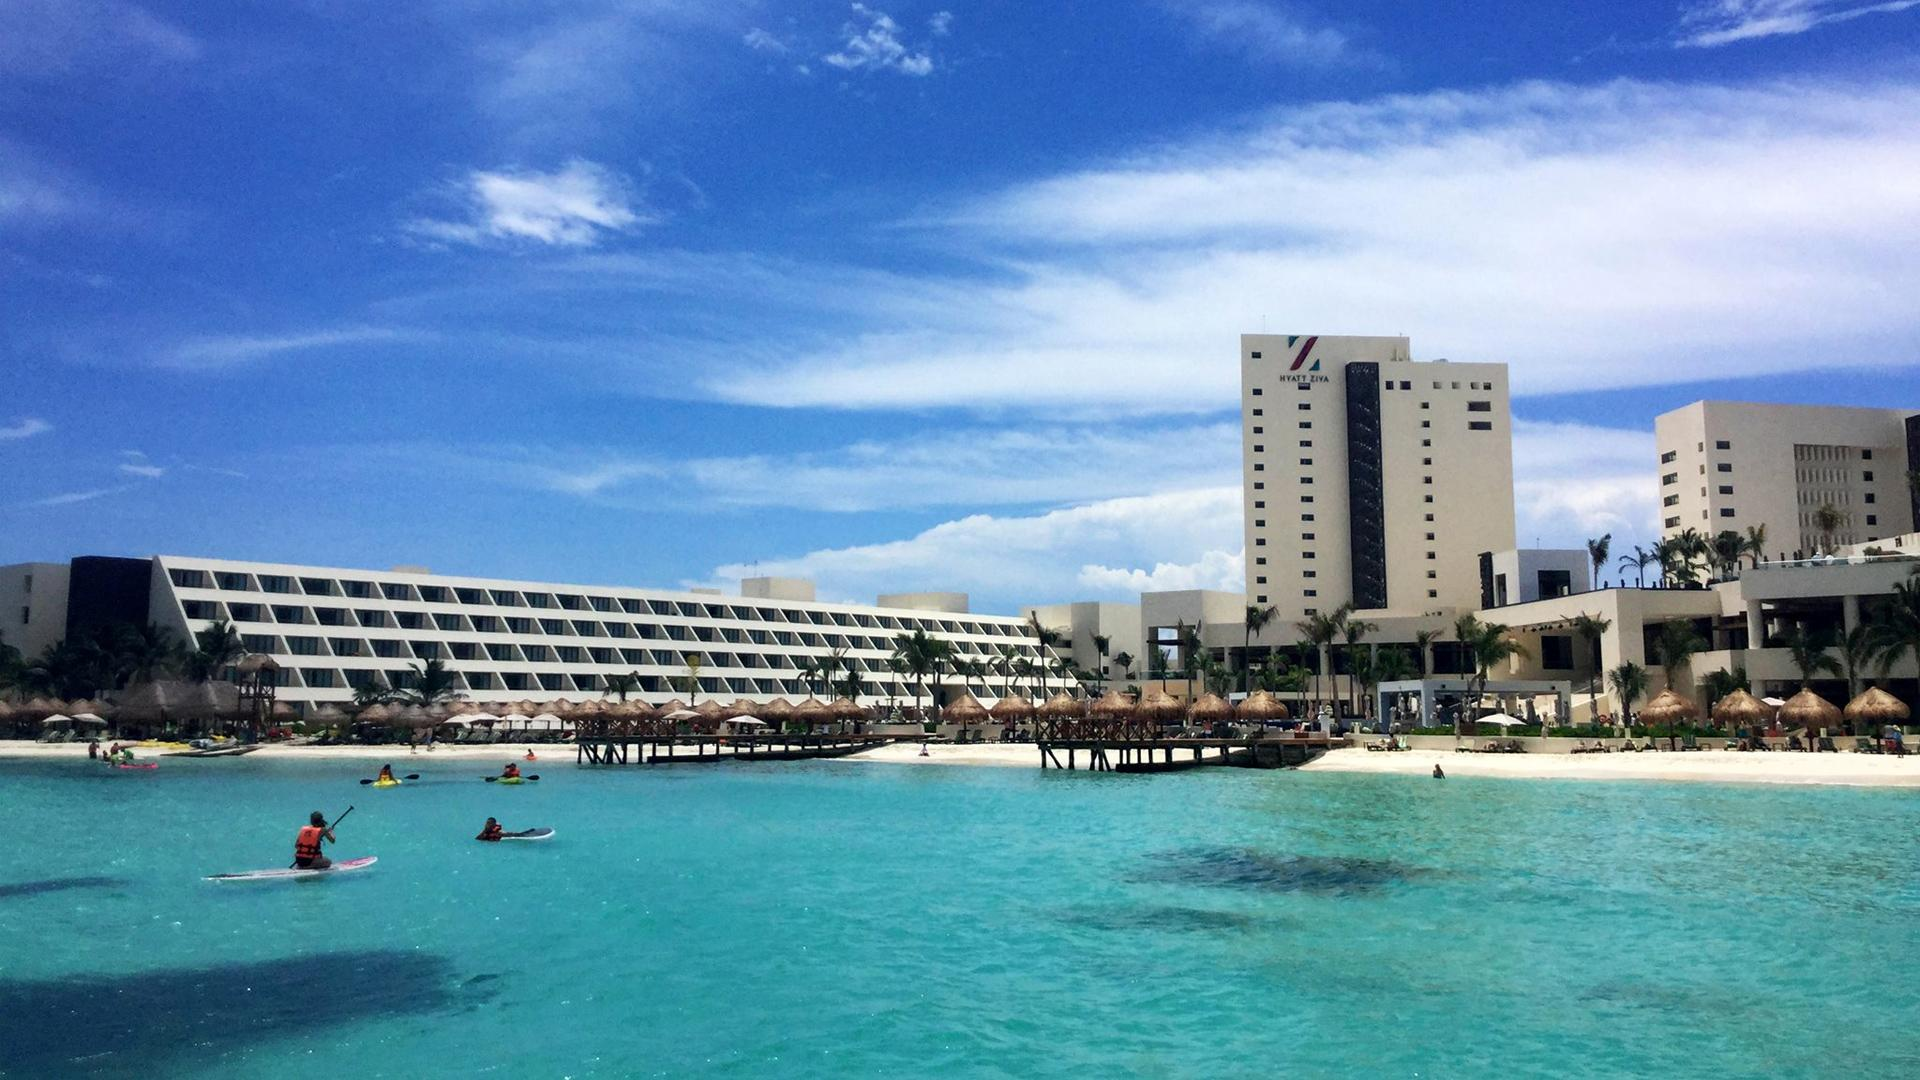 Hyatt lanza Turquoize en Cancún, All Inclusive solo para adultos